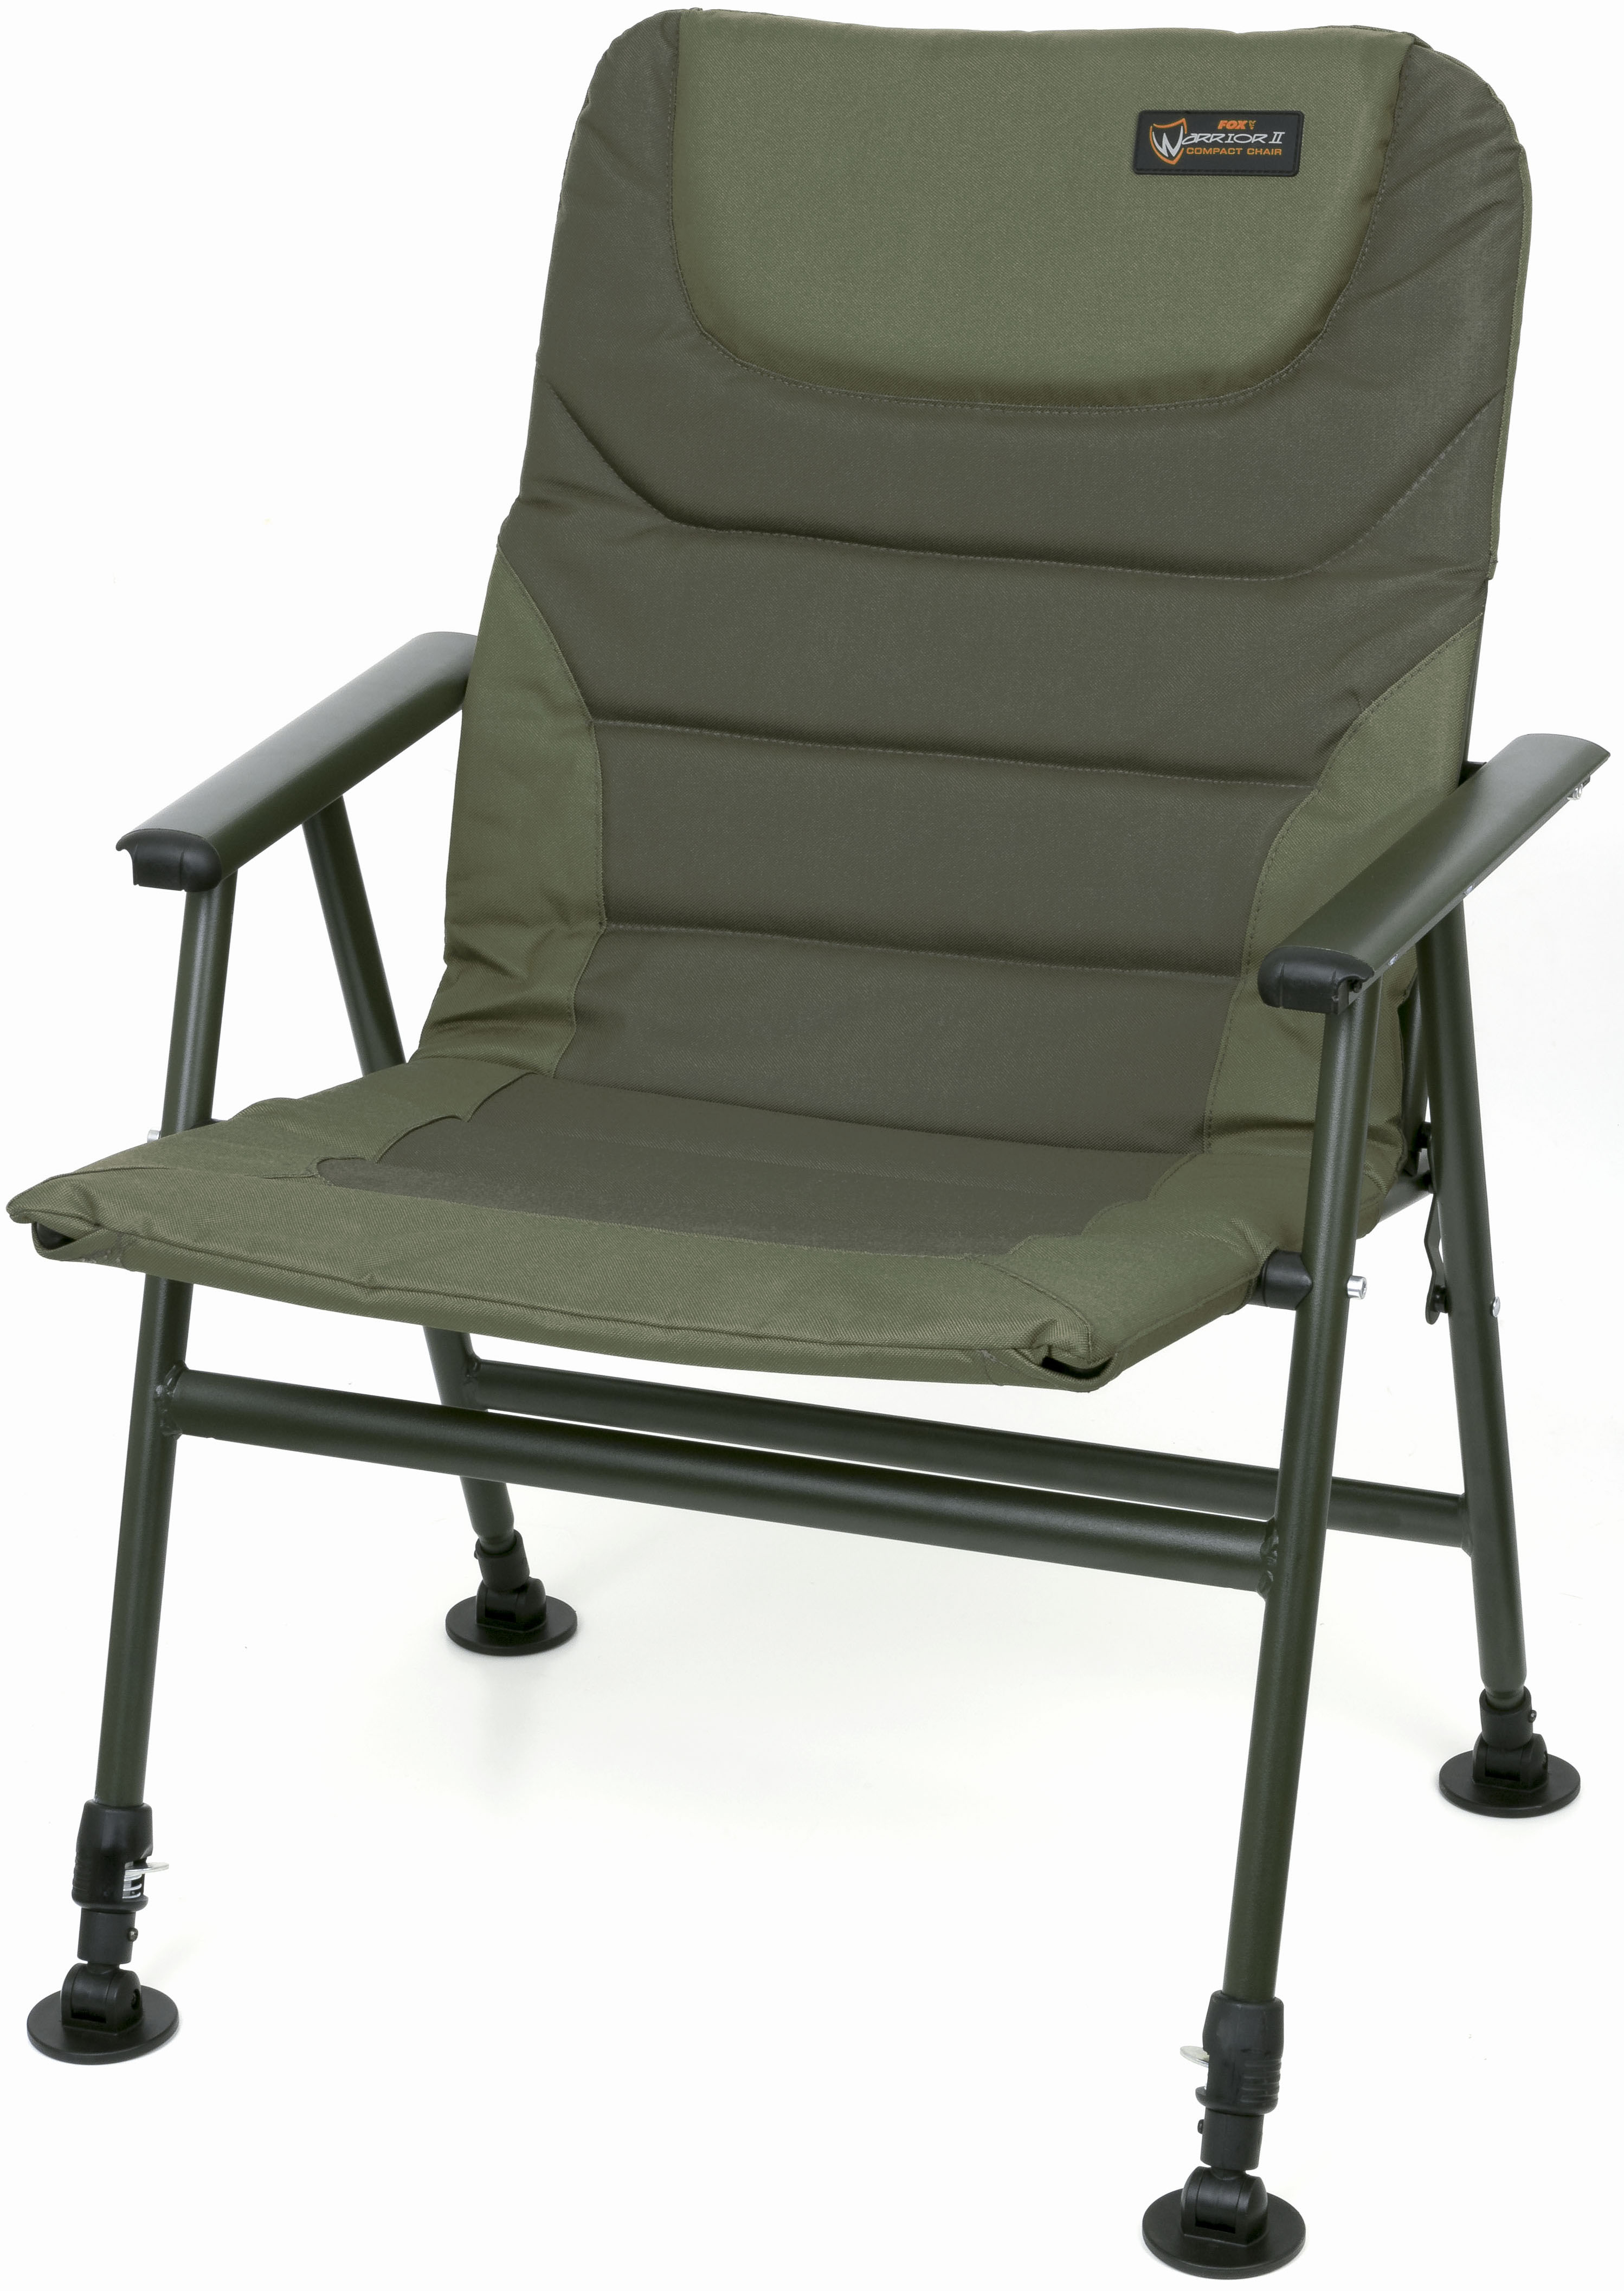 Fox Warrior Ii Compact Chair Glasgow Angling Centre